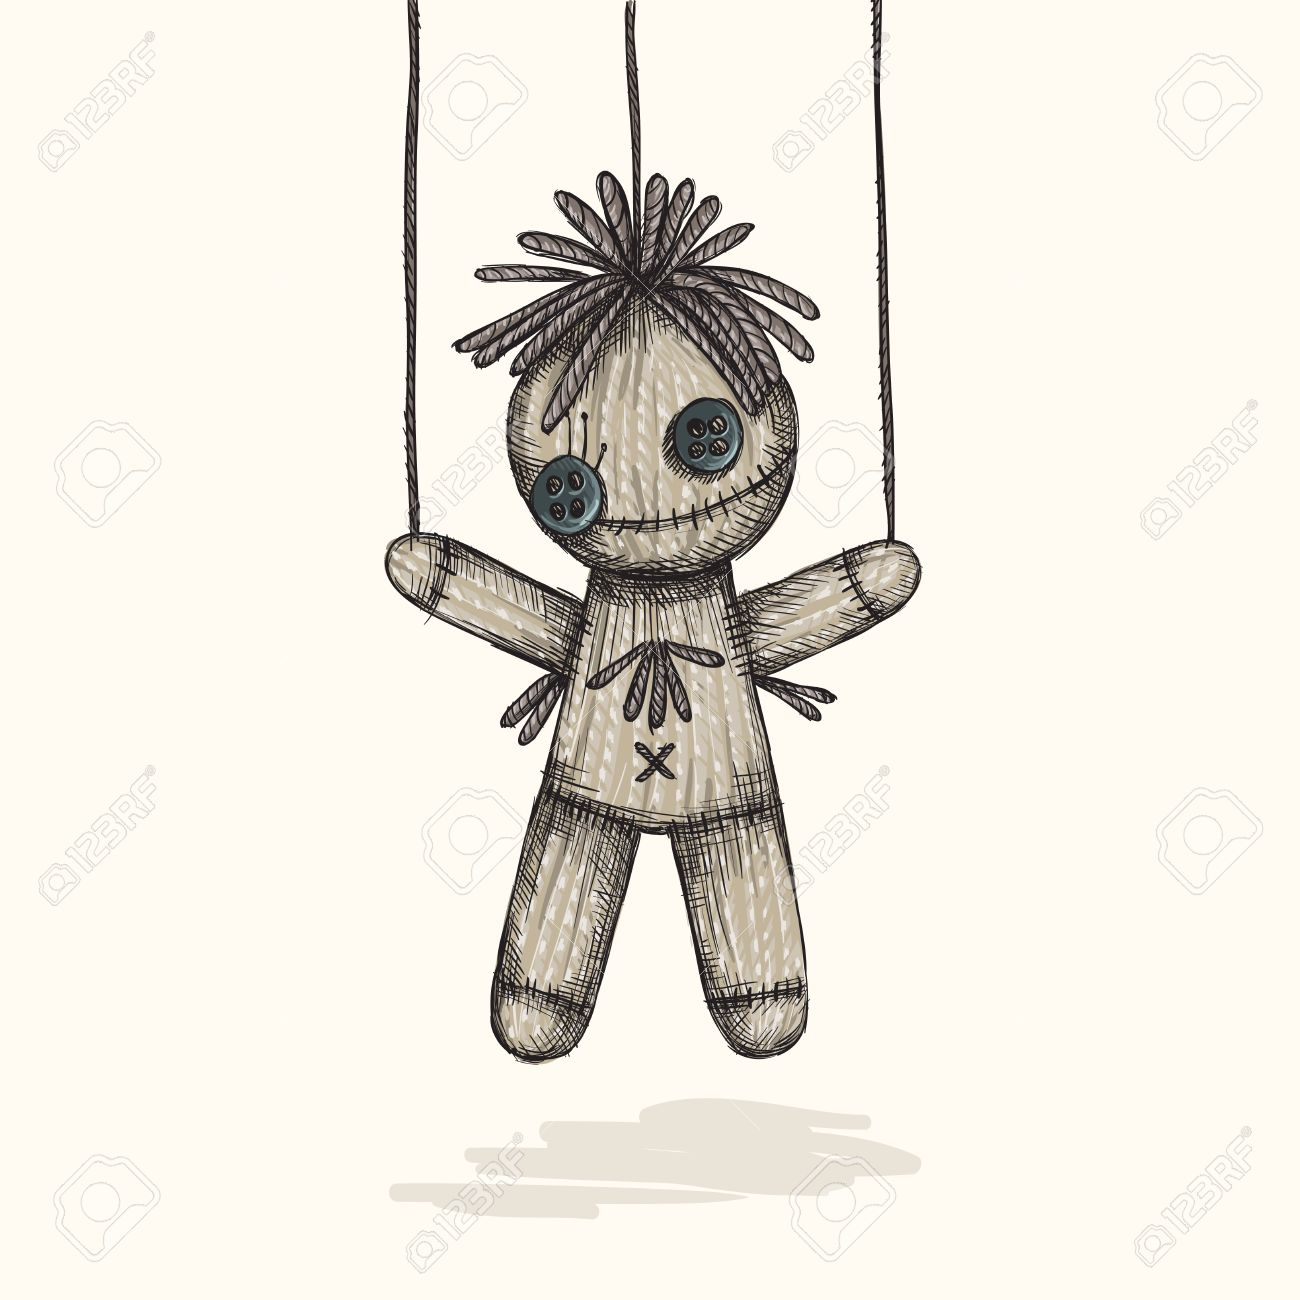 1300x1300 Spooky Voodoo Doll In A Sketch Style Royalty Free Cliparts